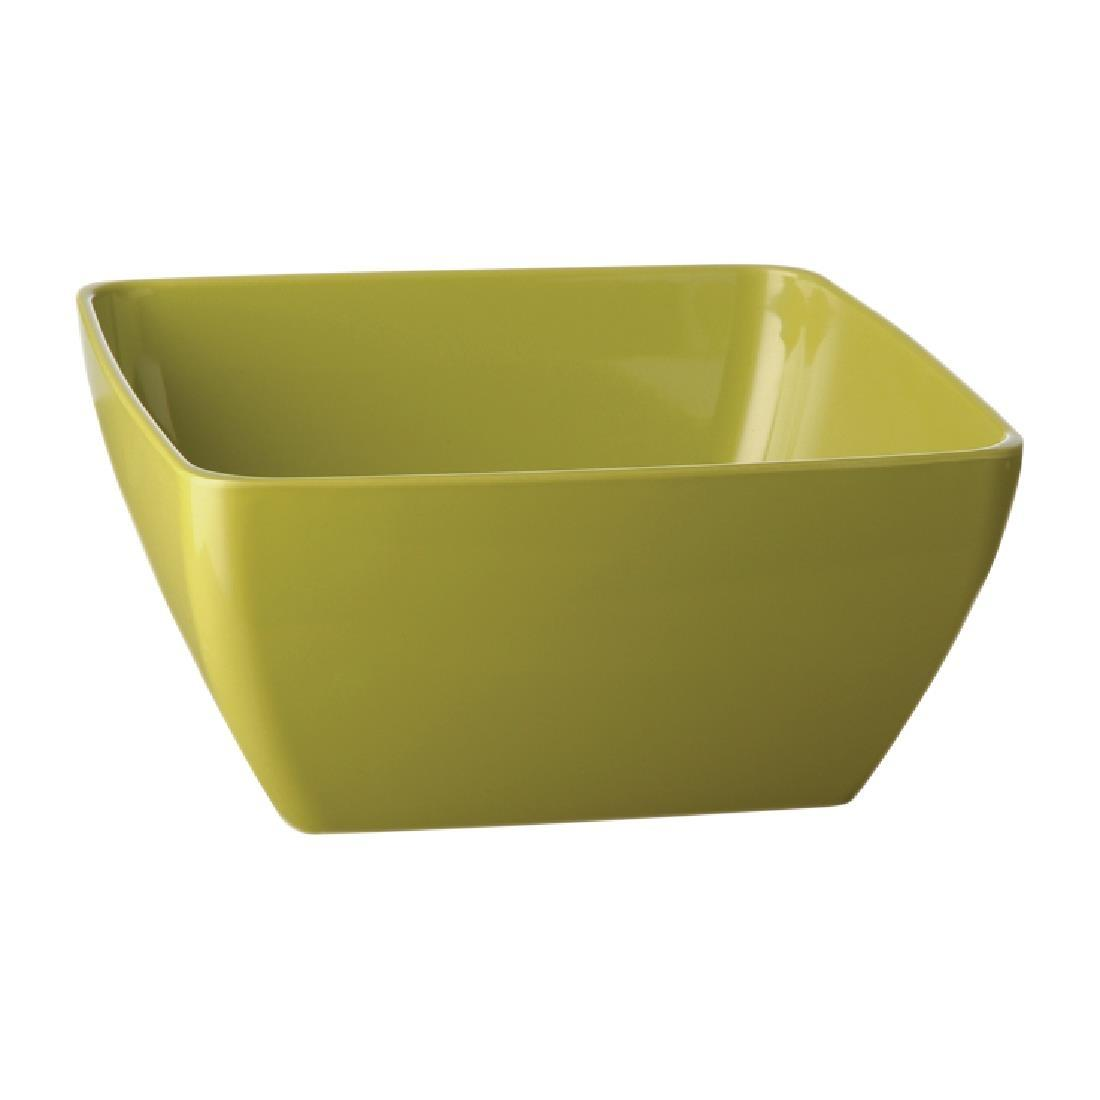 DS015 - APS Pure Bowl Green 125mm - Each - DS015